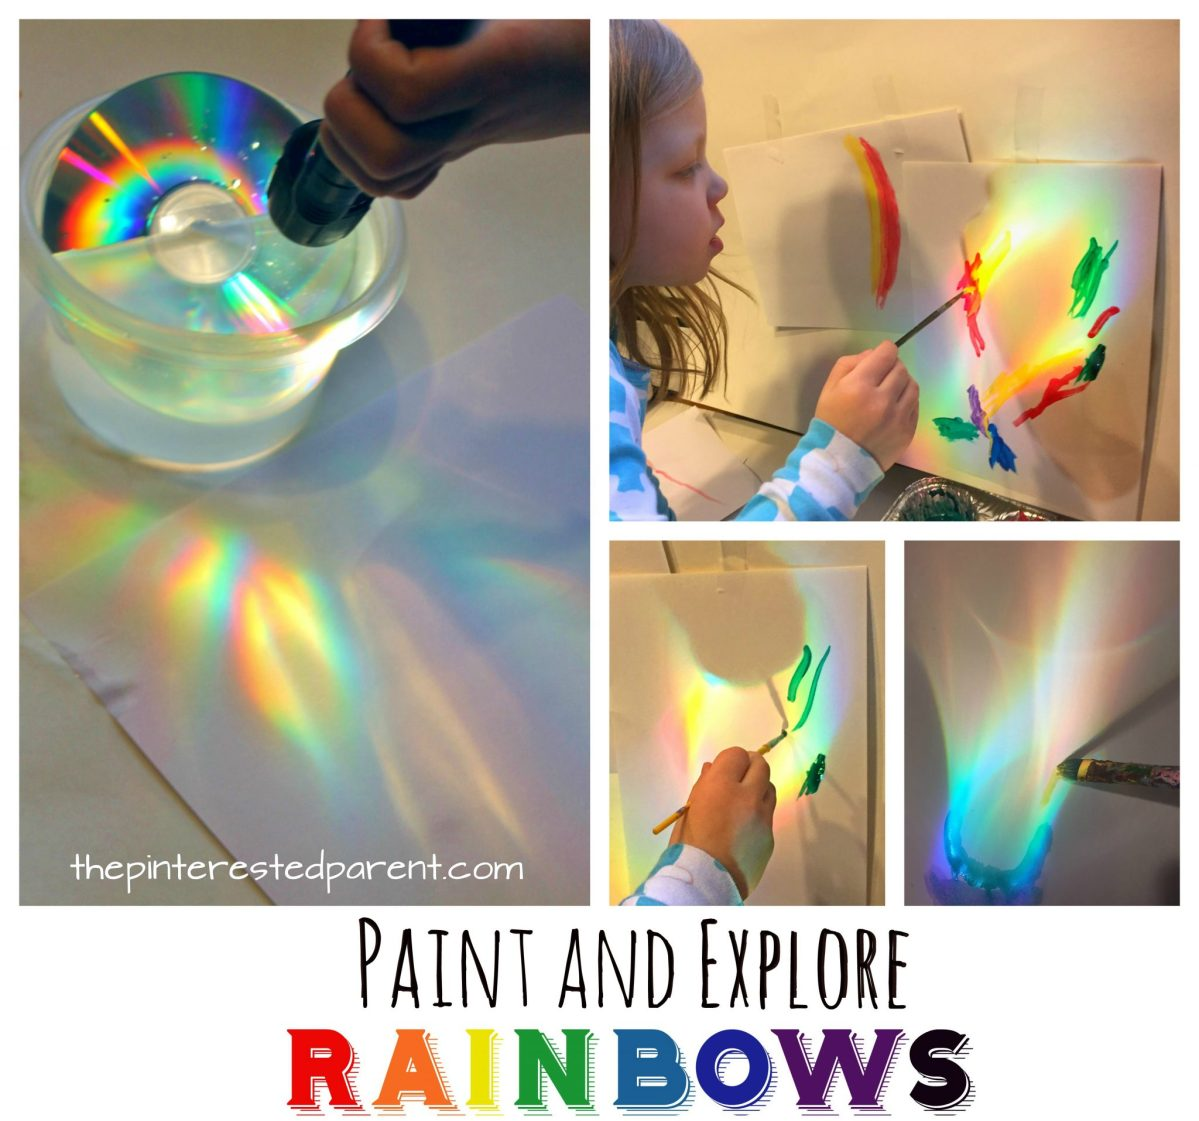 Make, Explore, Paint Rainbows